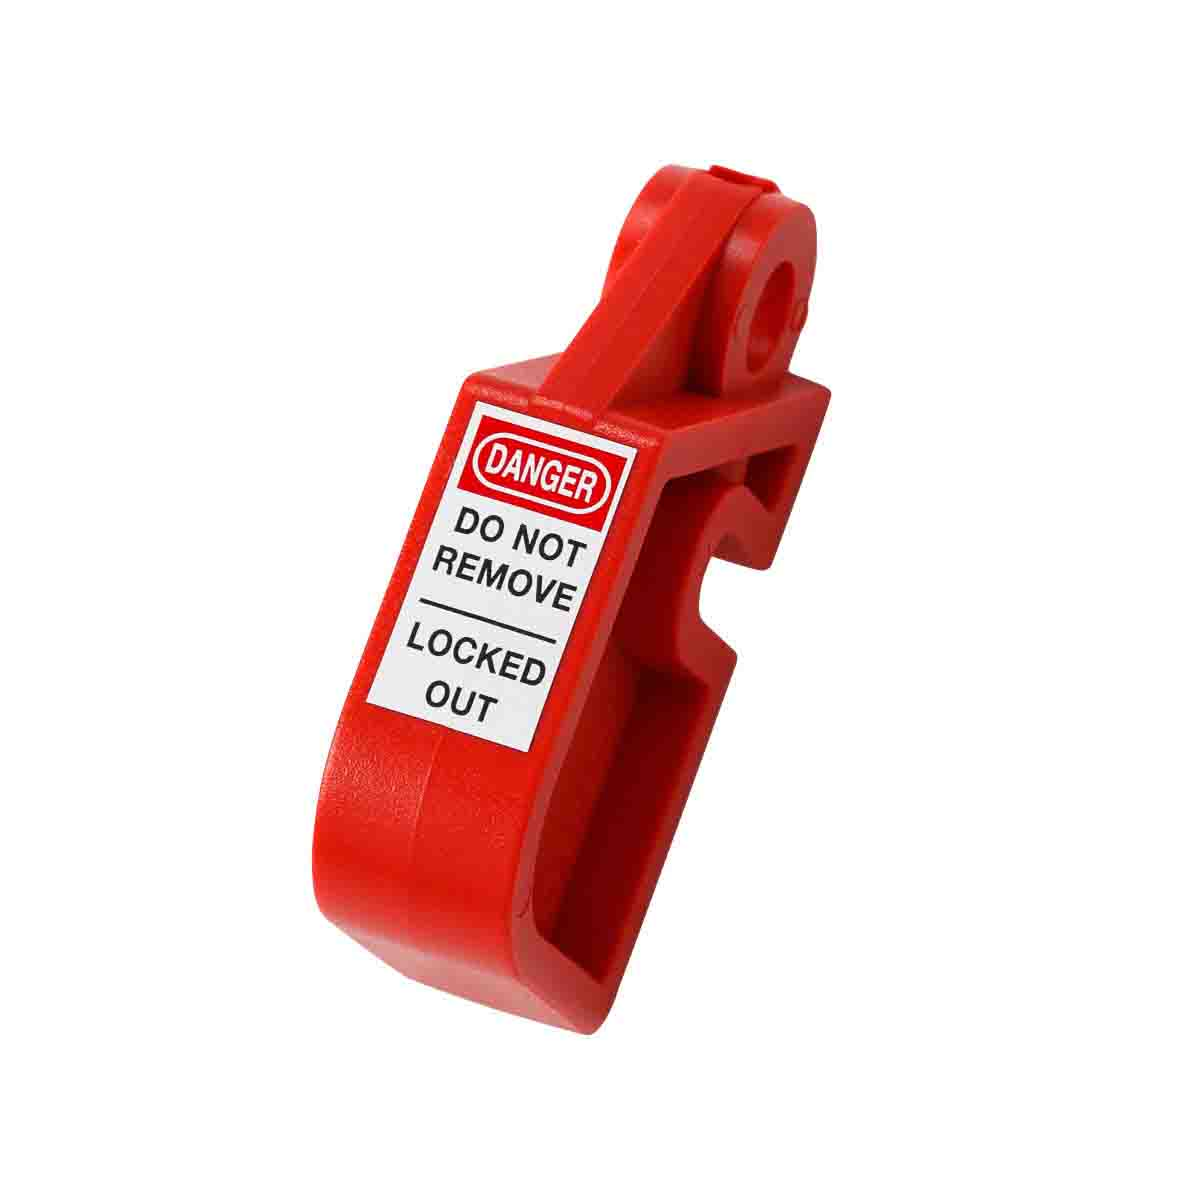 dy Part: 873367 | Universal Fuse Lockout | dyID.com on panel lockout, transformer lockout, electrical plug lockout, switch lockout, hose bibb lockout,